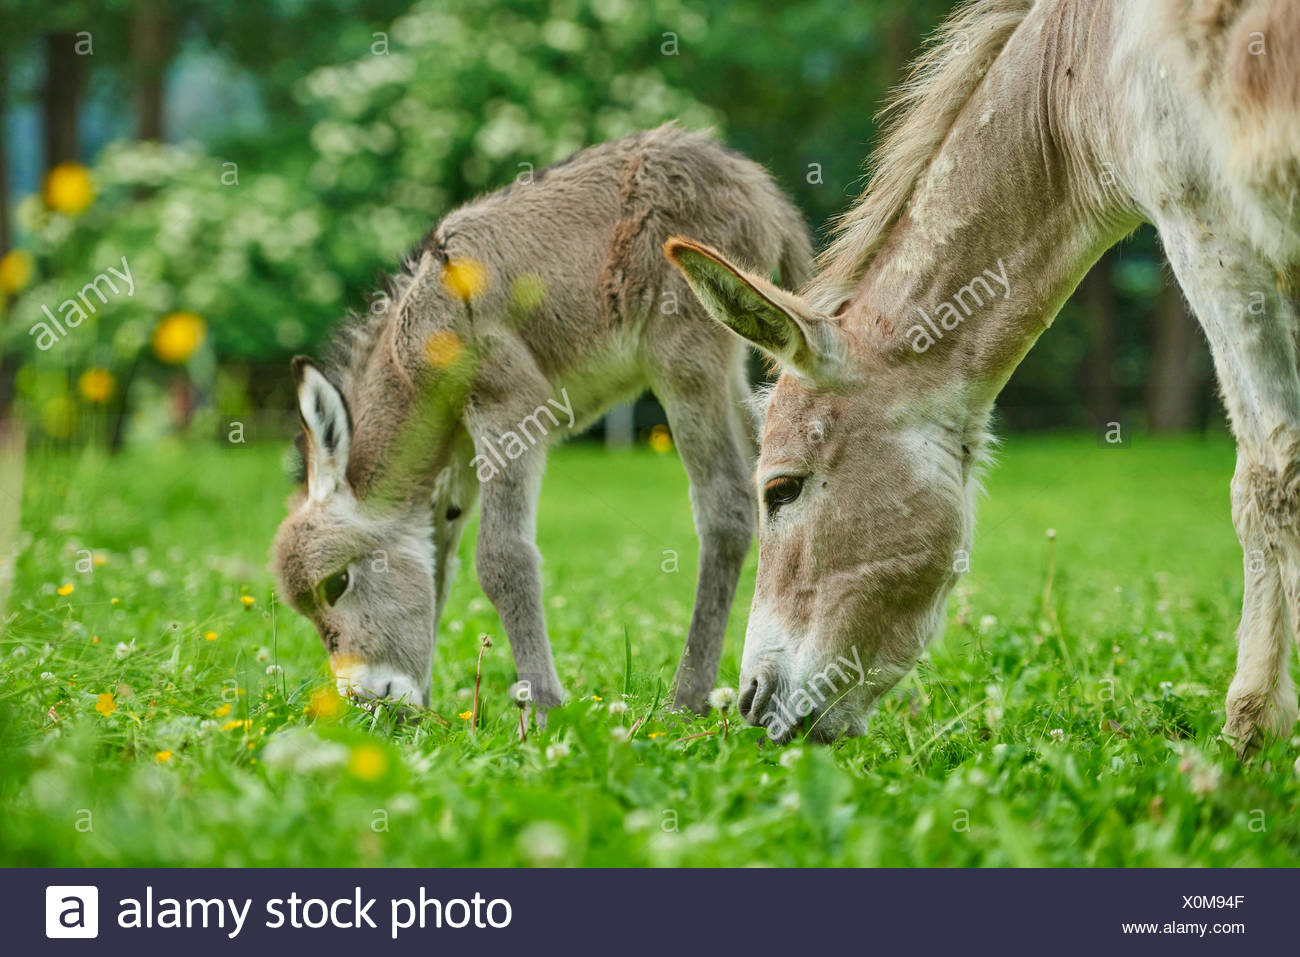 Domestic donkey (Equus asinus asinus), eight hours old donkey foal with mother in a meadow, Germany - Stock Image